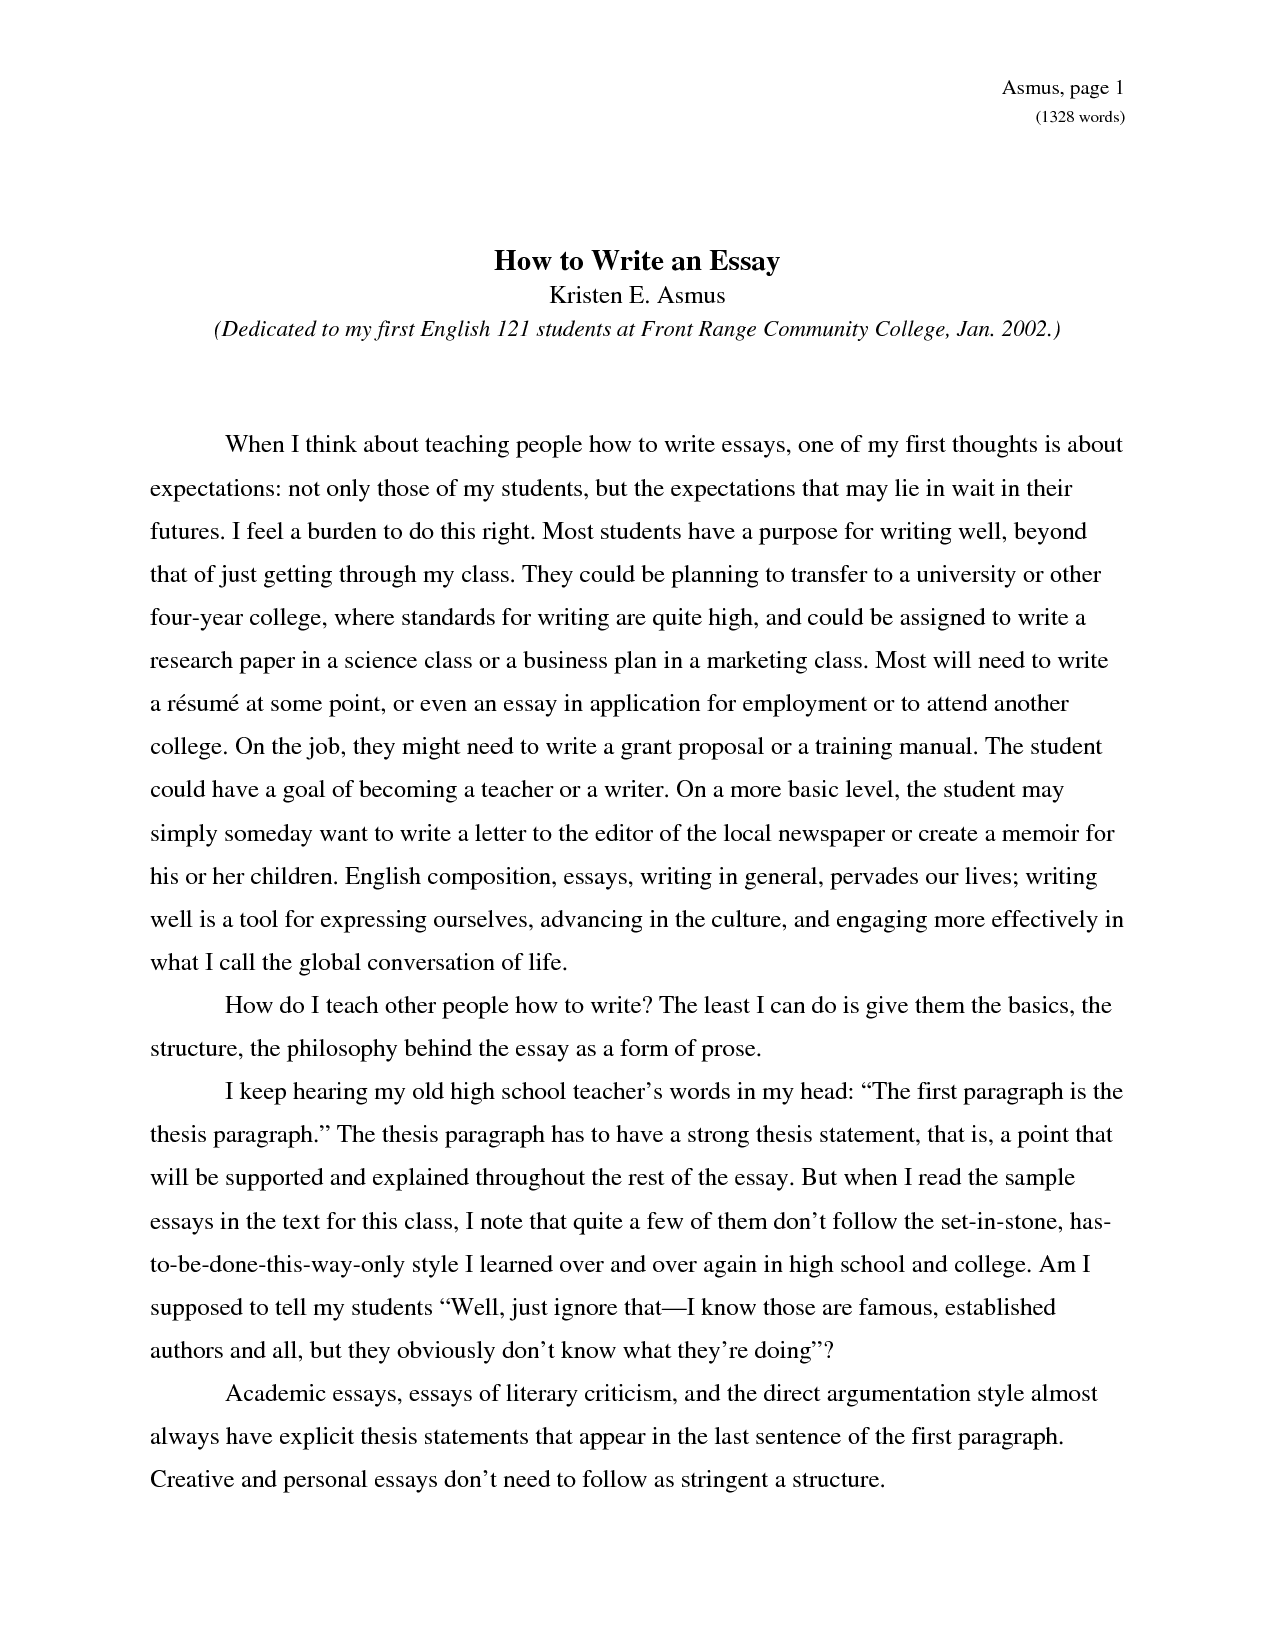 Sample essay writing